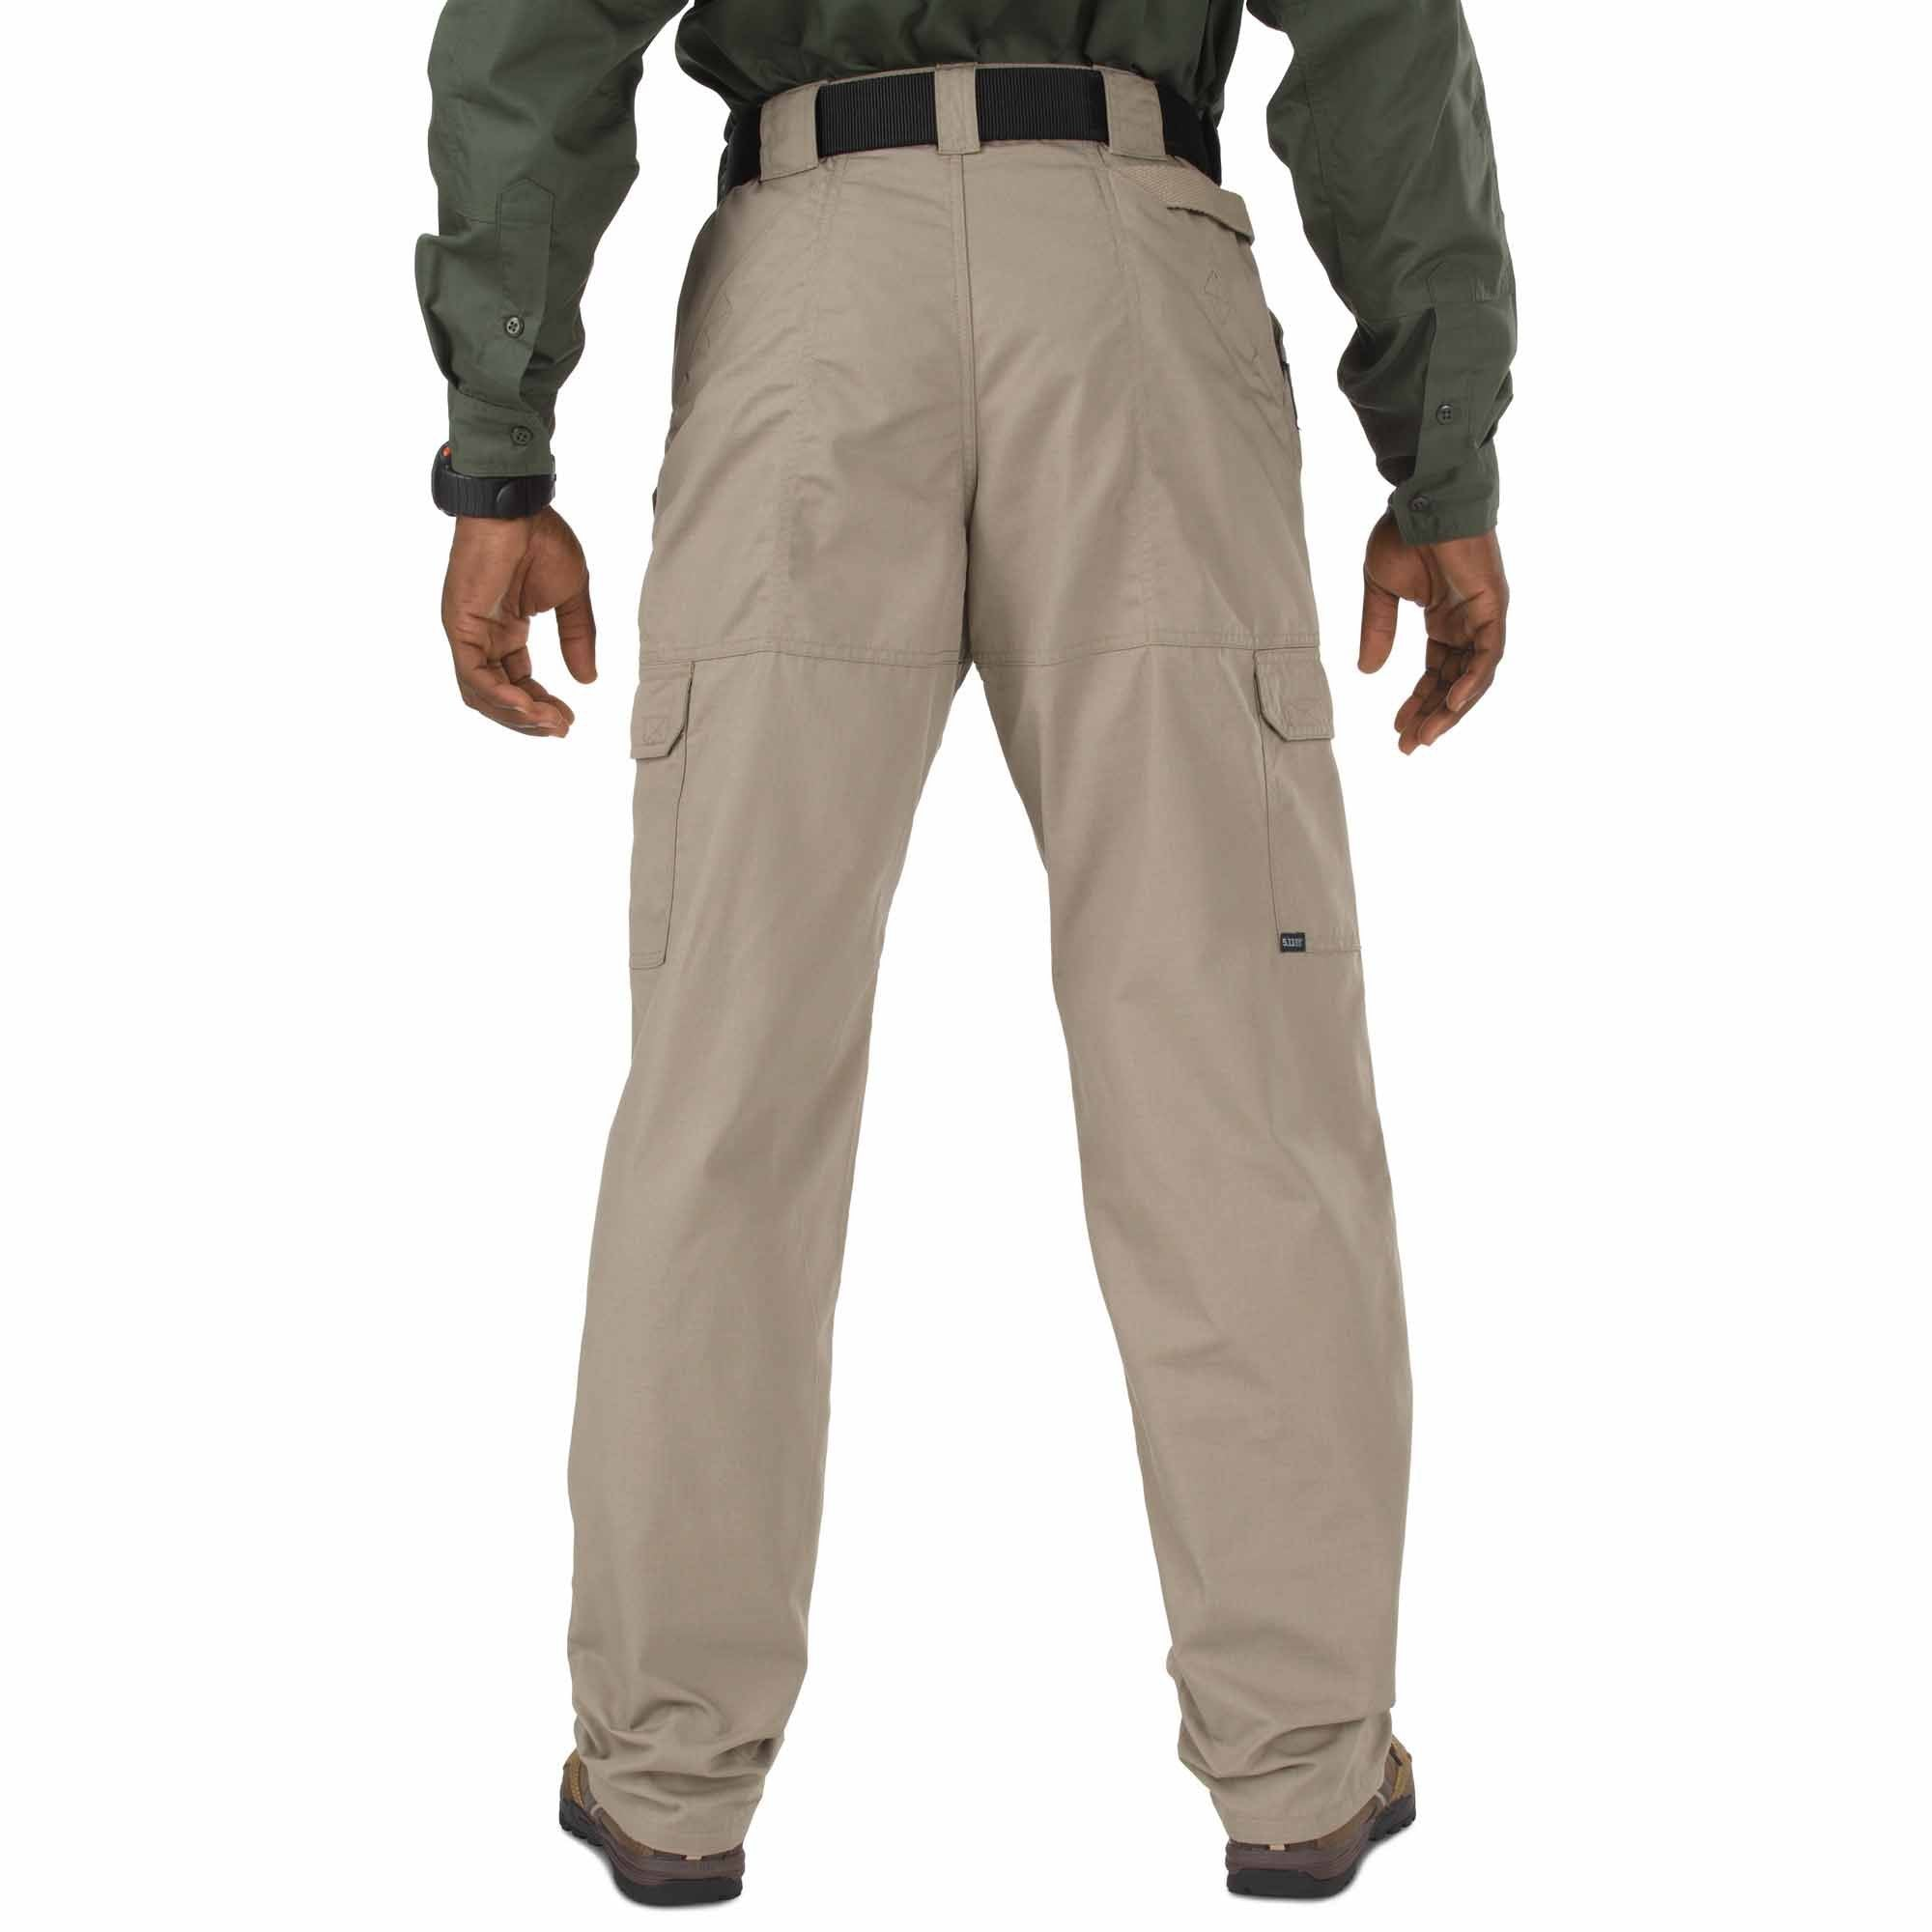 (🔥Buy 2 Free Shipping)2020 New Upgraded Men's Tactical Pants